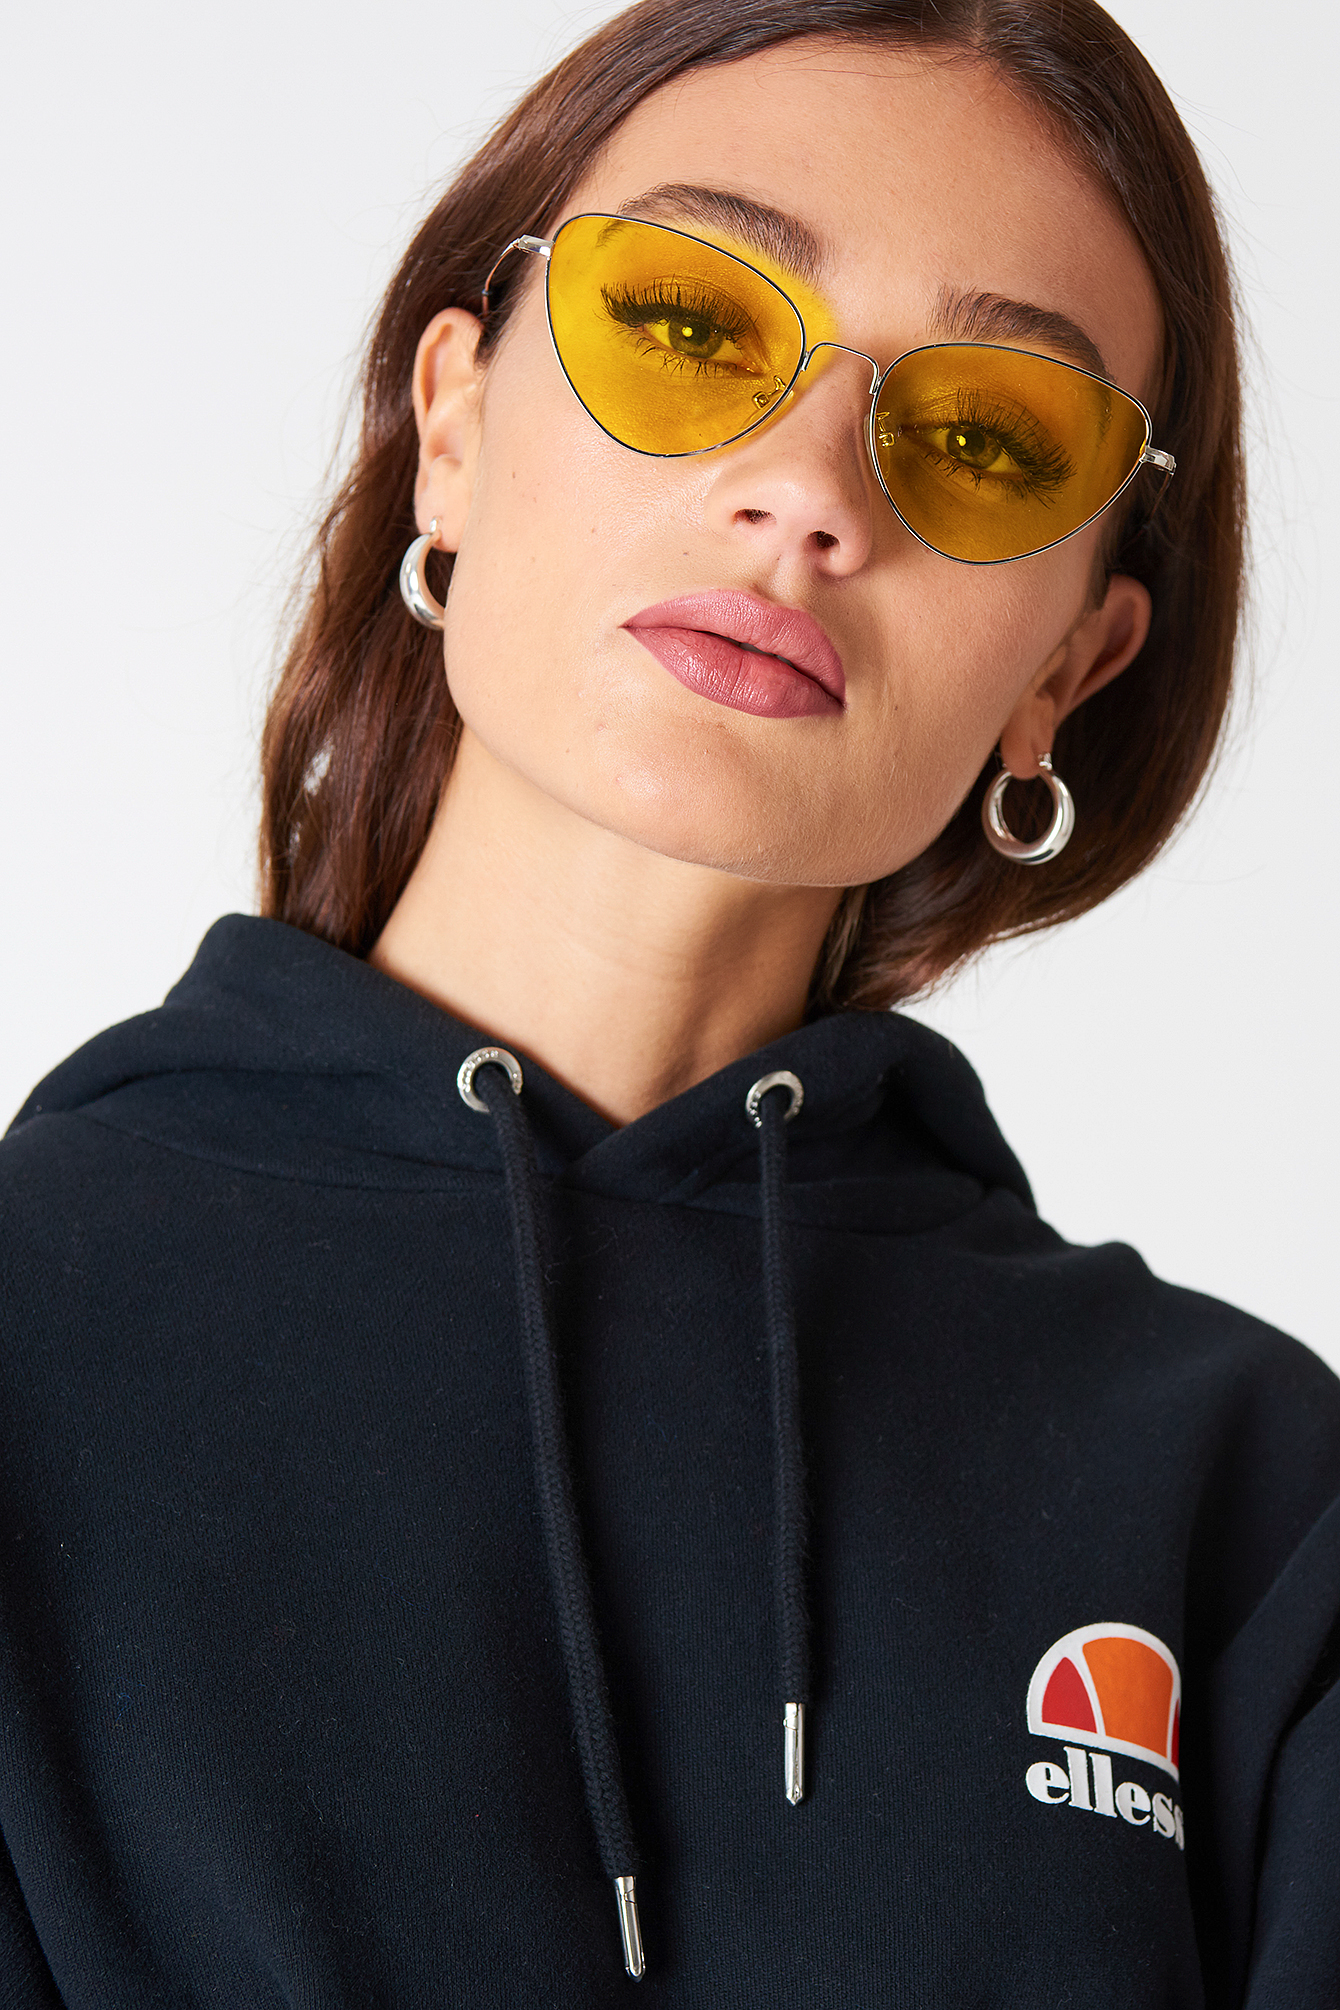 The Metal Frame Cat Eye Sunglasses by NA-KD Accessories features thin metal temples with dark tipped edges, cat eye frames, clear colored lenses, and a small nose bridge.